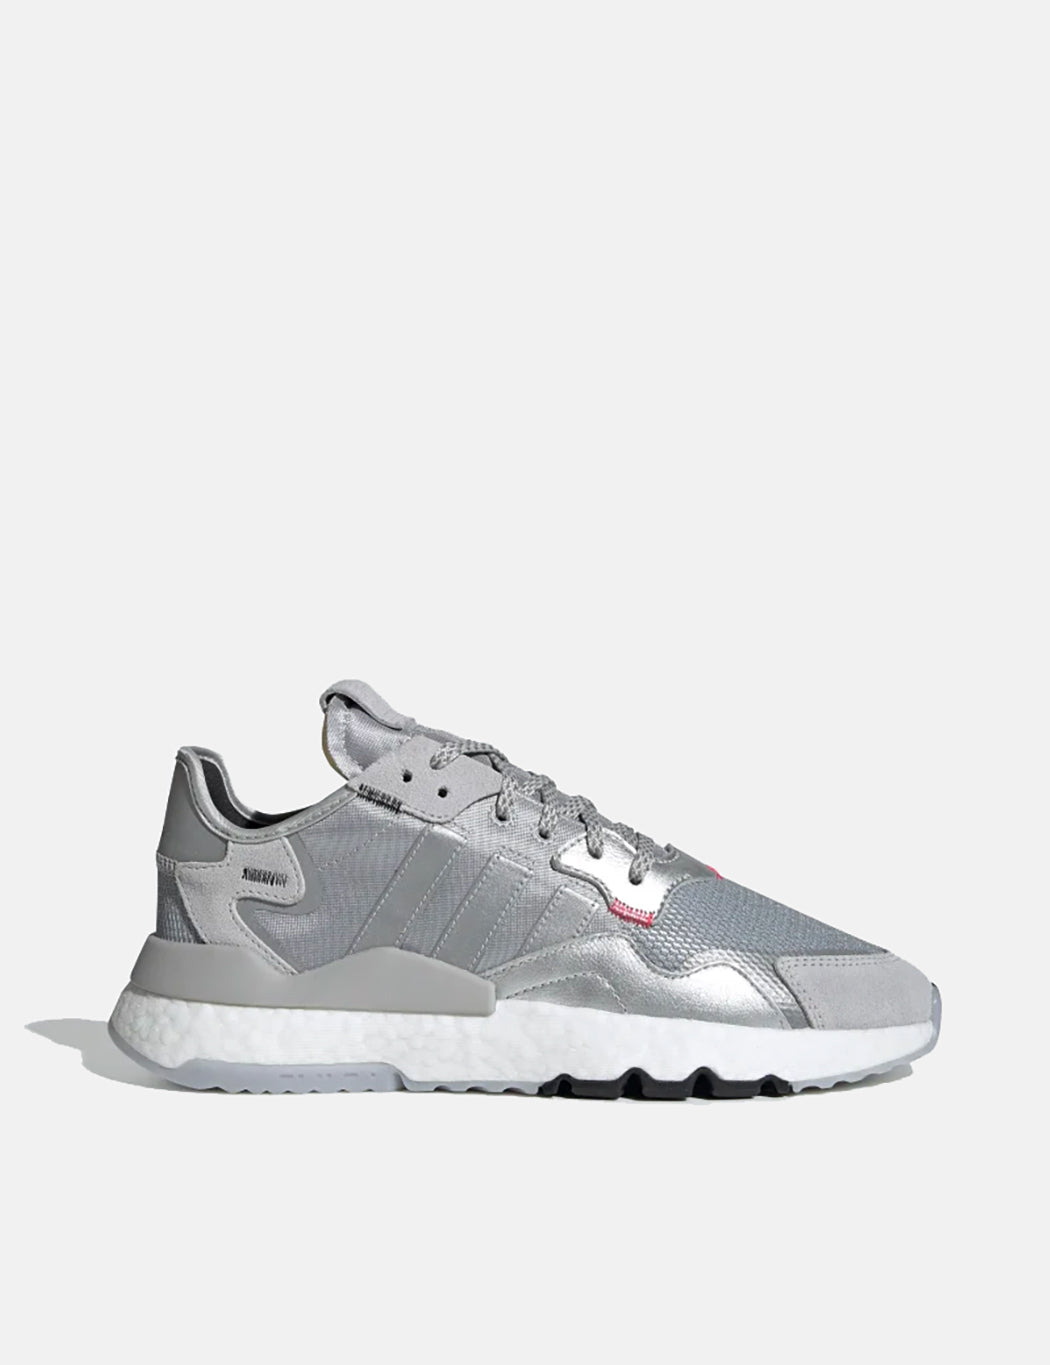 adidas Nite Jogger Shoes (EE5851) - Silver Metallic / Light Solid Grey / Core Black